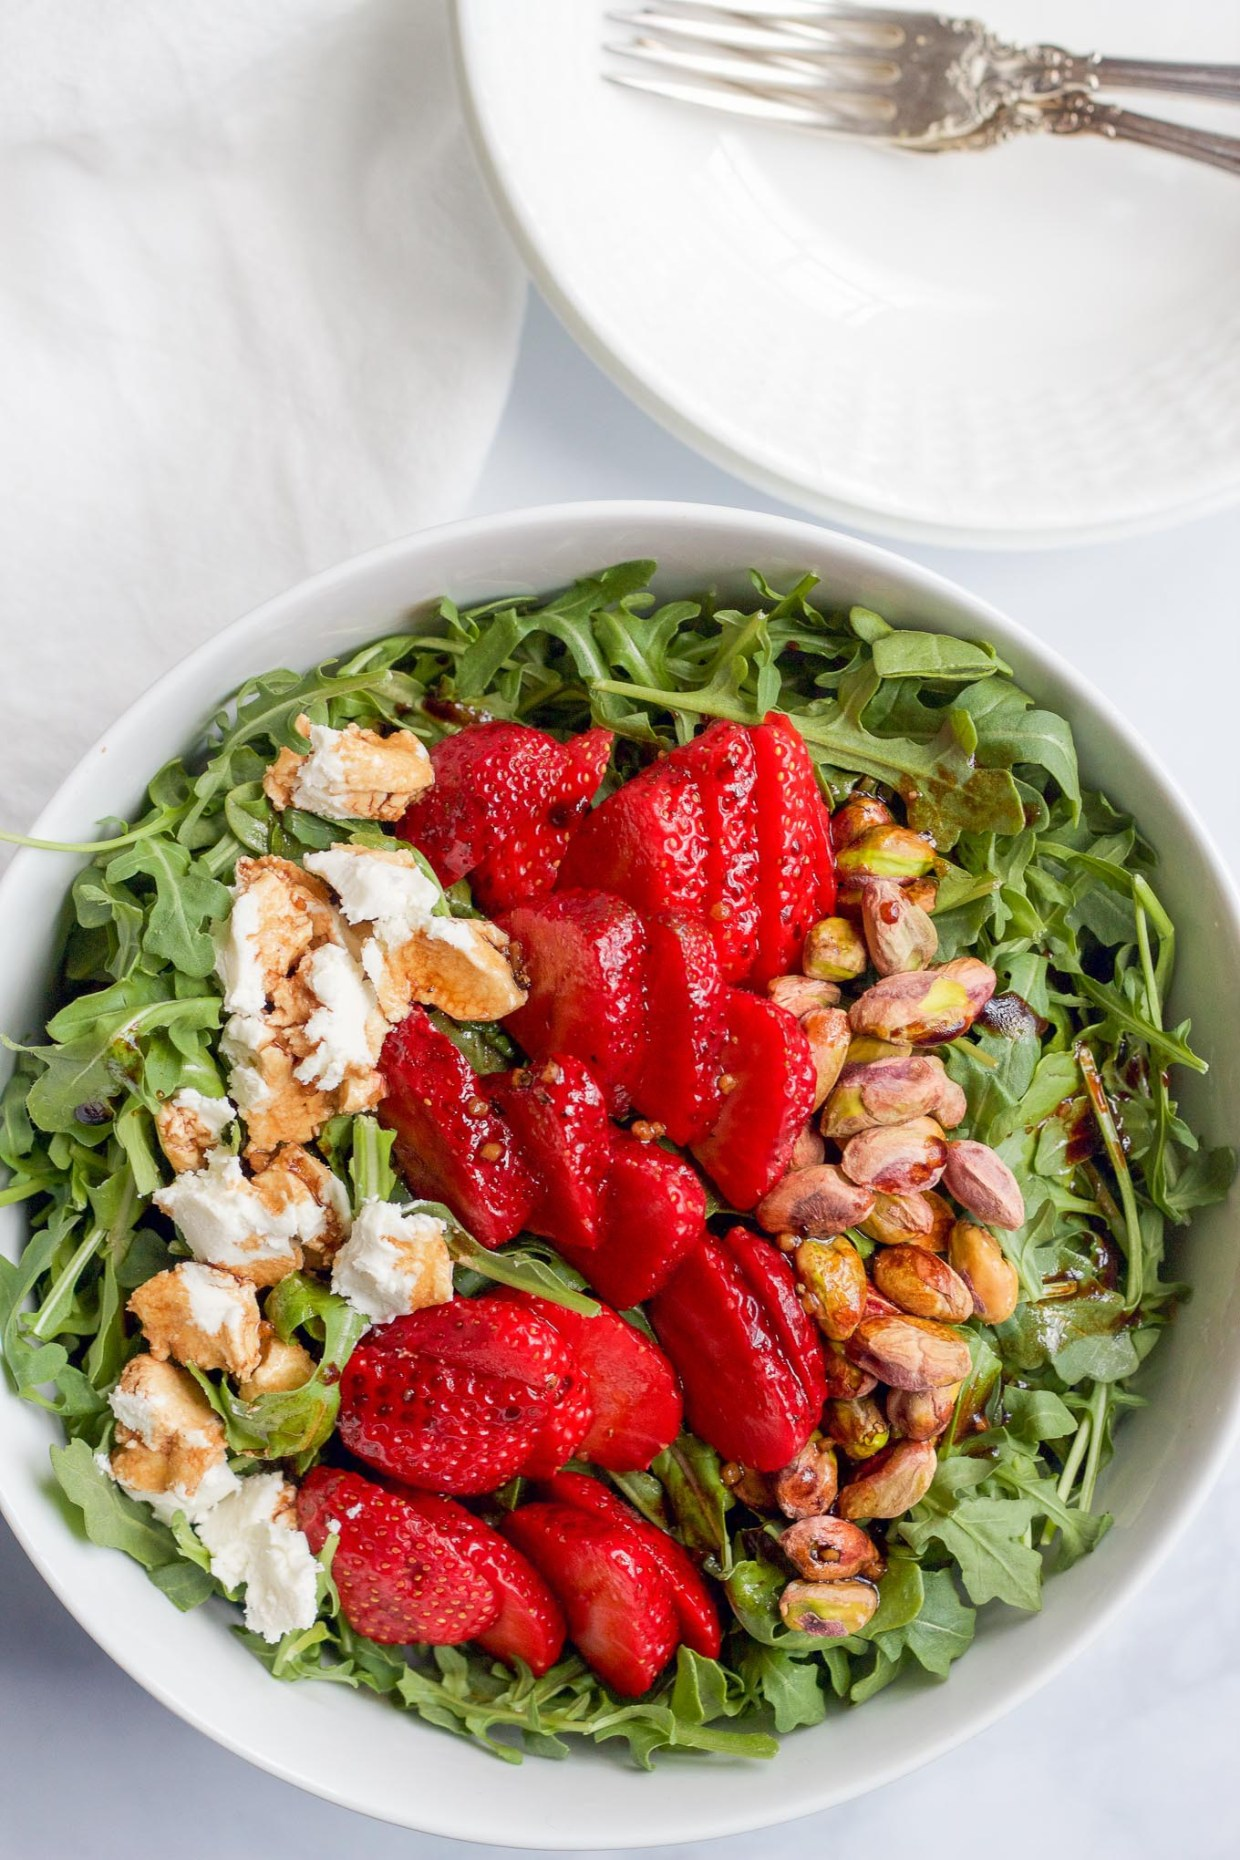 lettuce salad with strawberries - HD1360×907